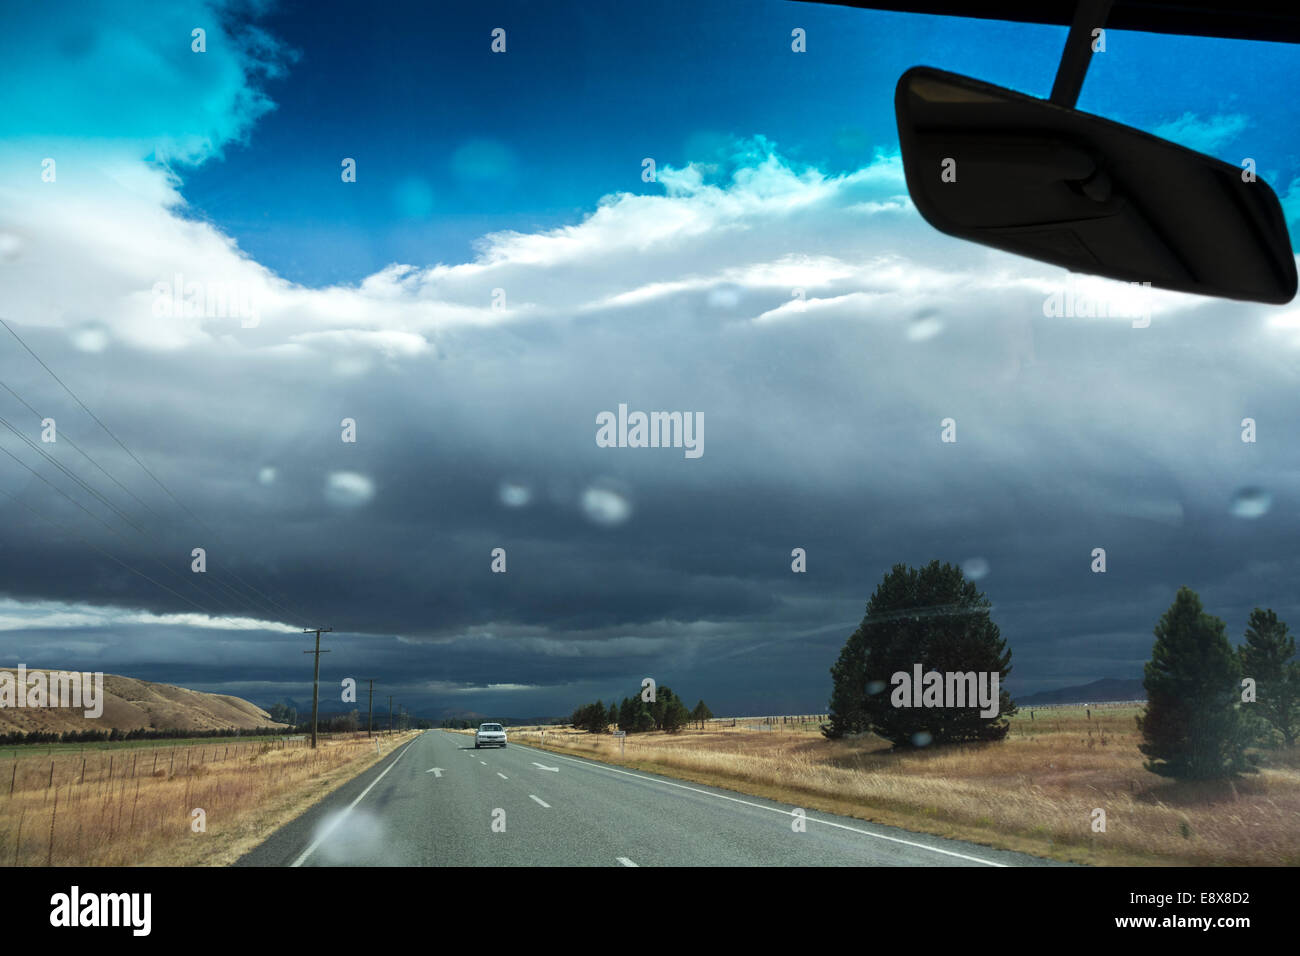 New Zealand weather can be unpredictable. Driving into a rainstorm on Highway 8 near Omarama. First rain drops on - Stock Image